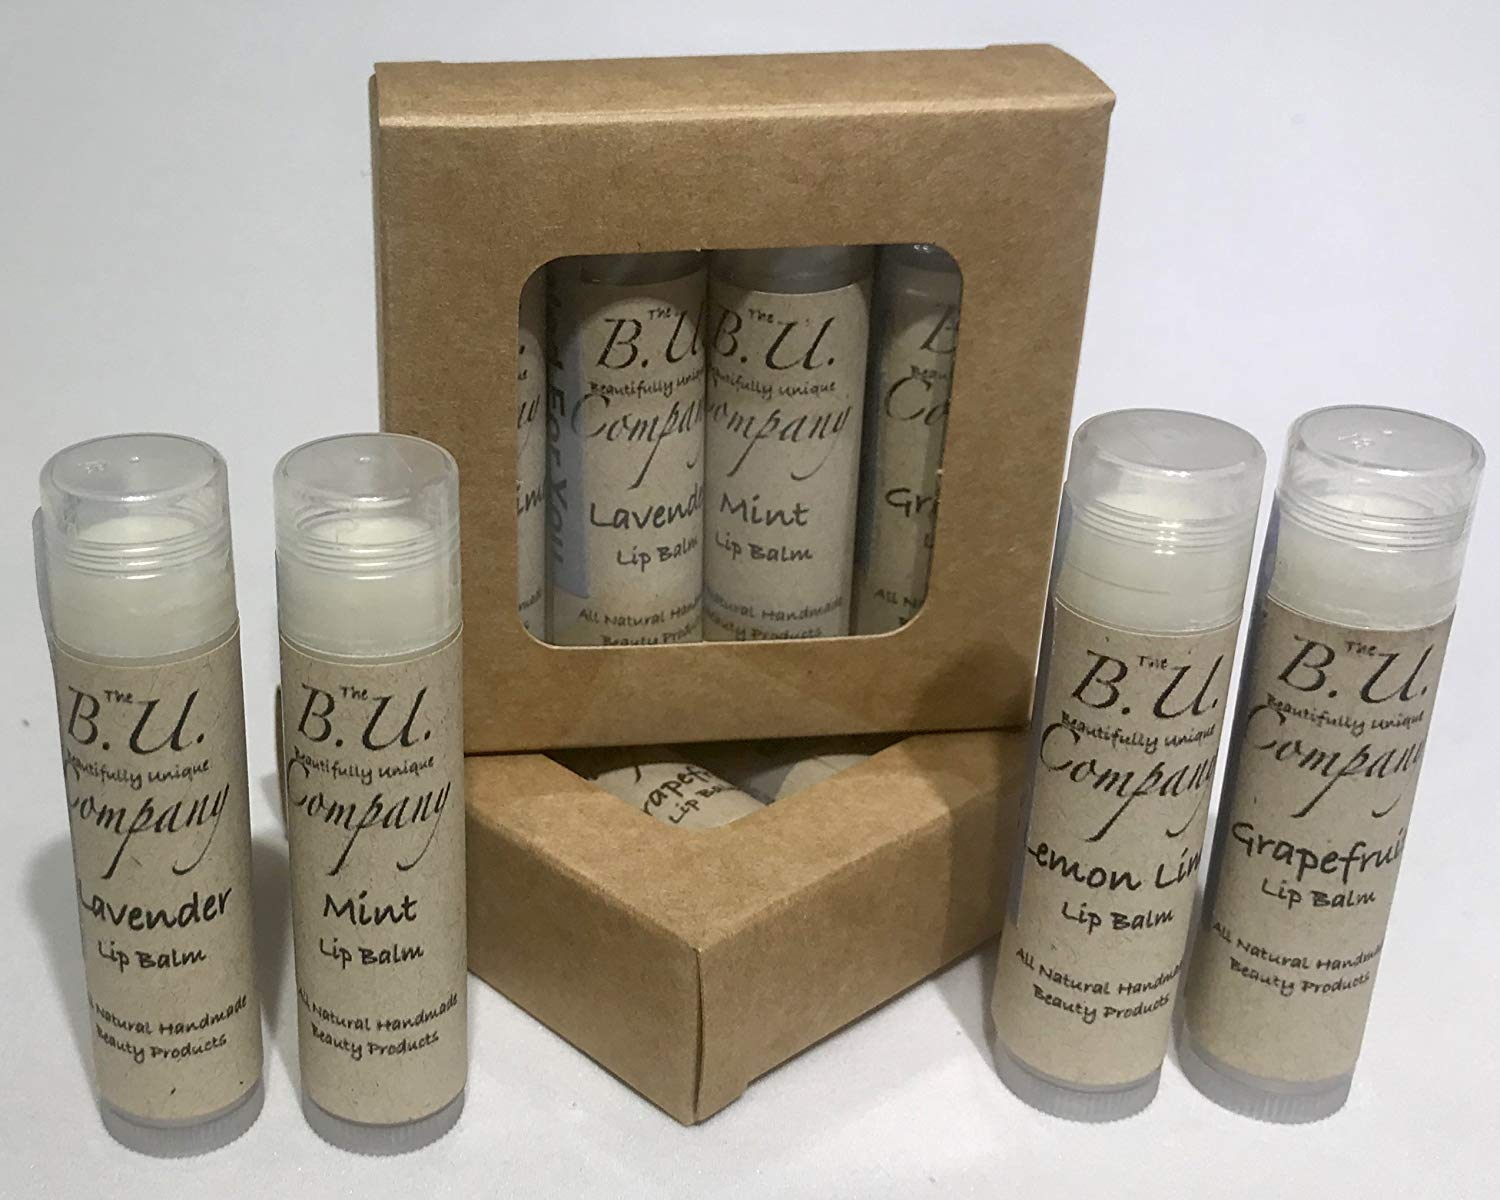 All Natural Lip Balm - Variety Pack - Grapefruit, Lemon Lime, Mint, and Lavender - All Natural Handmade - BU Company - 4 pack